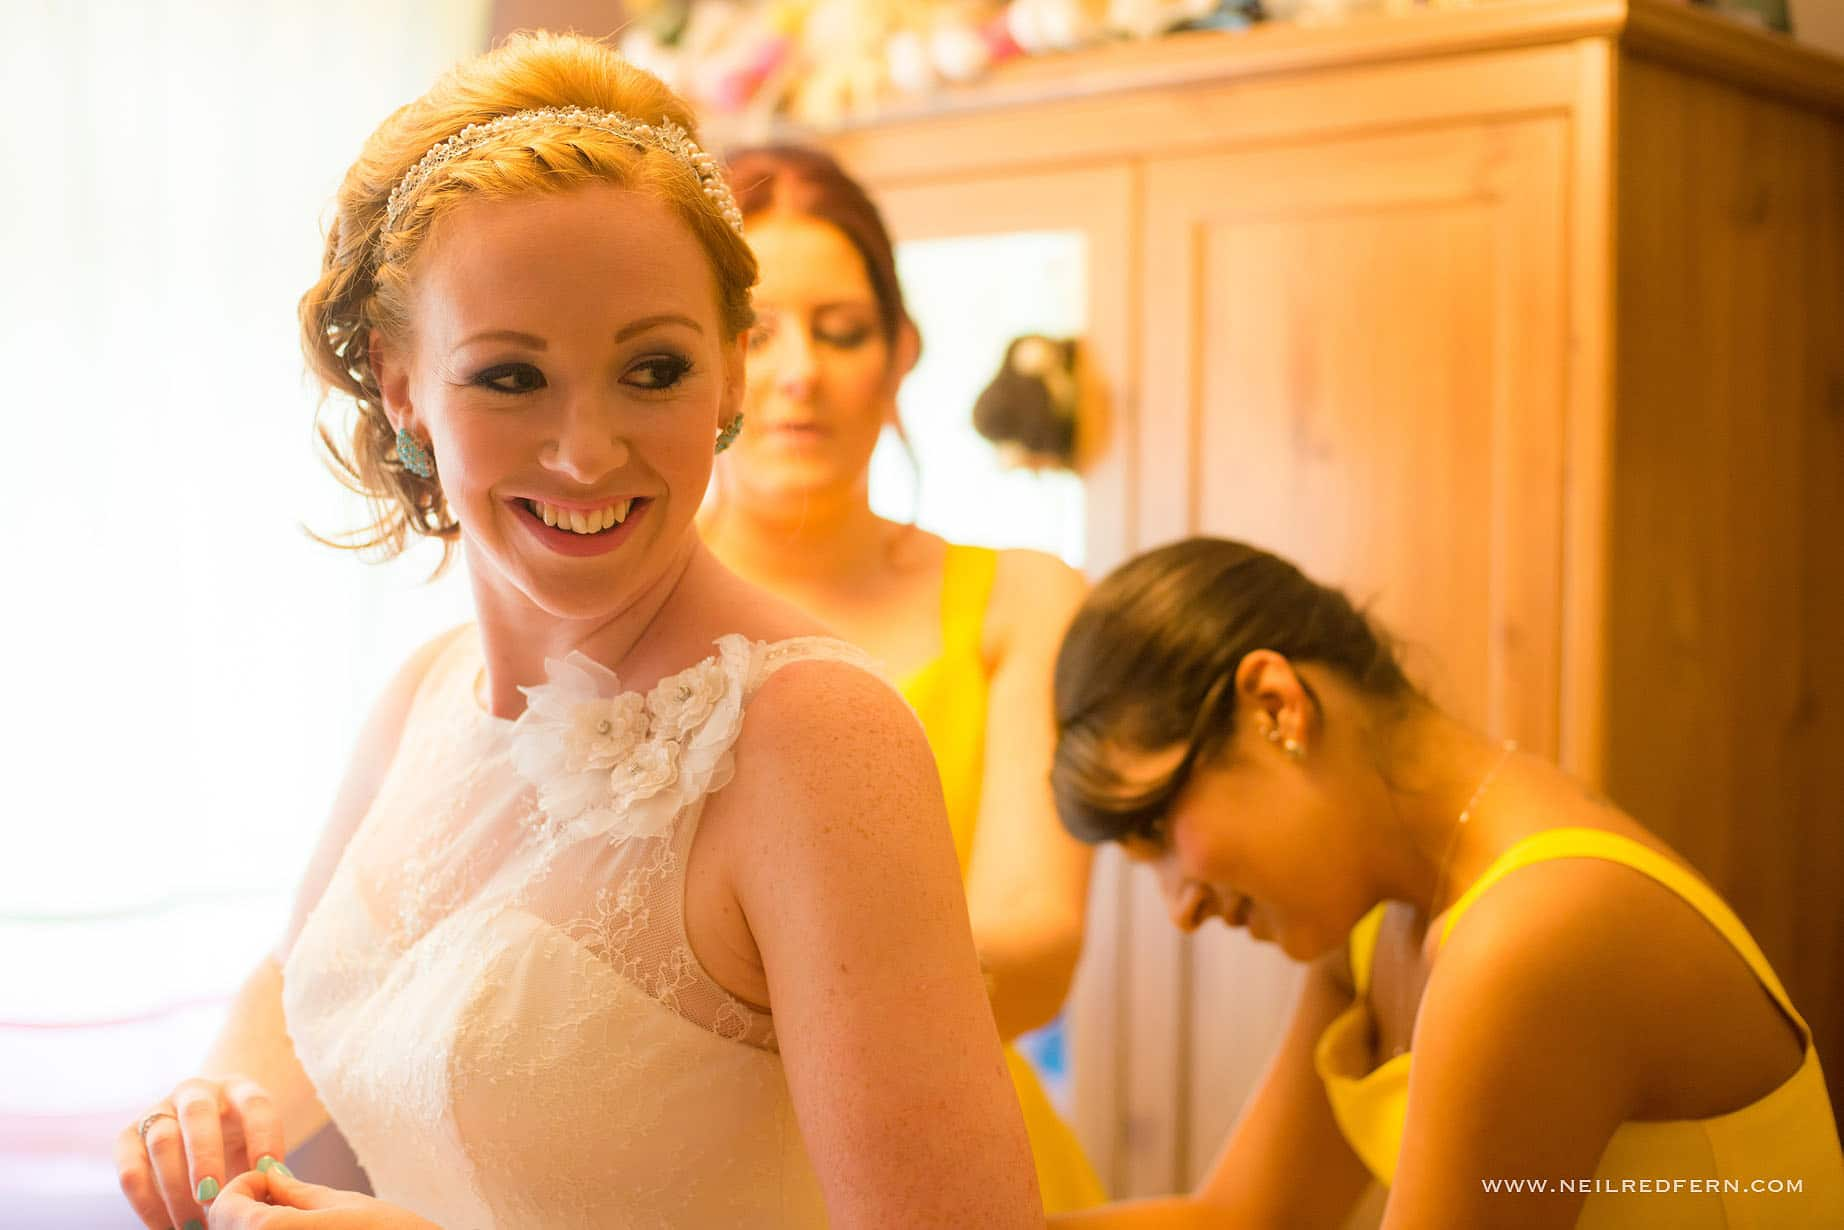 Bride getting ready in the morning 10